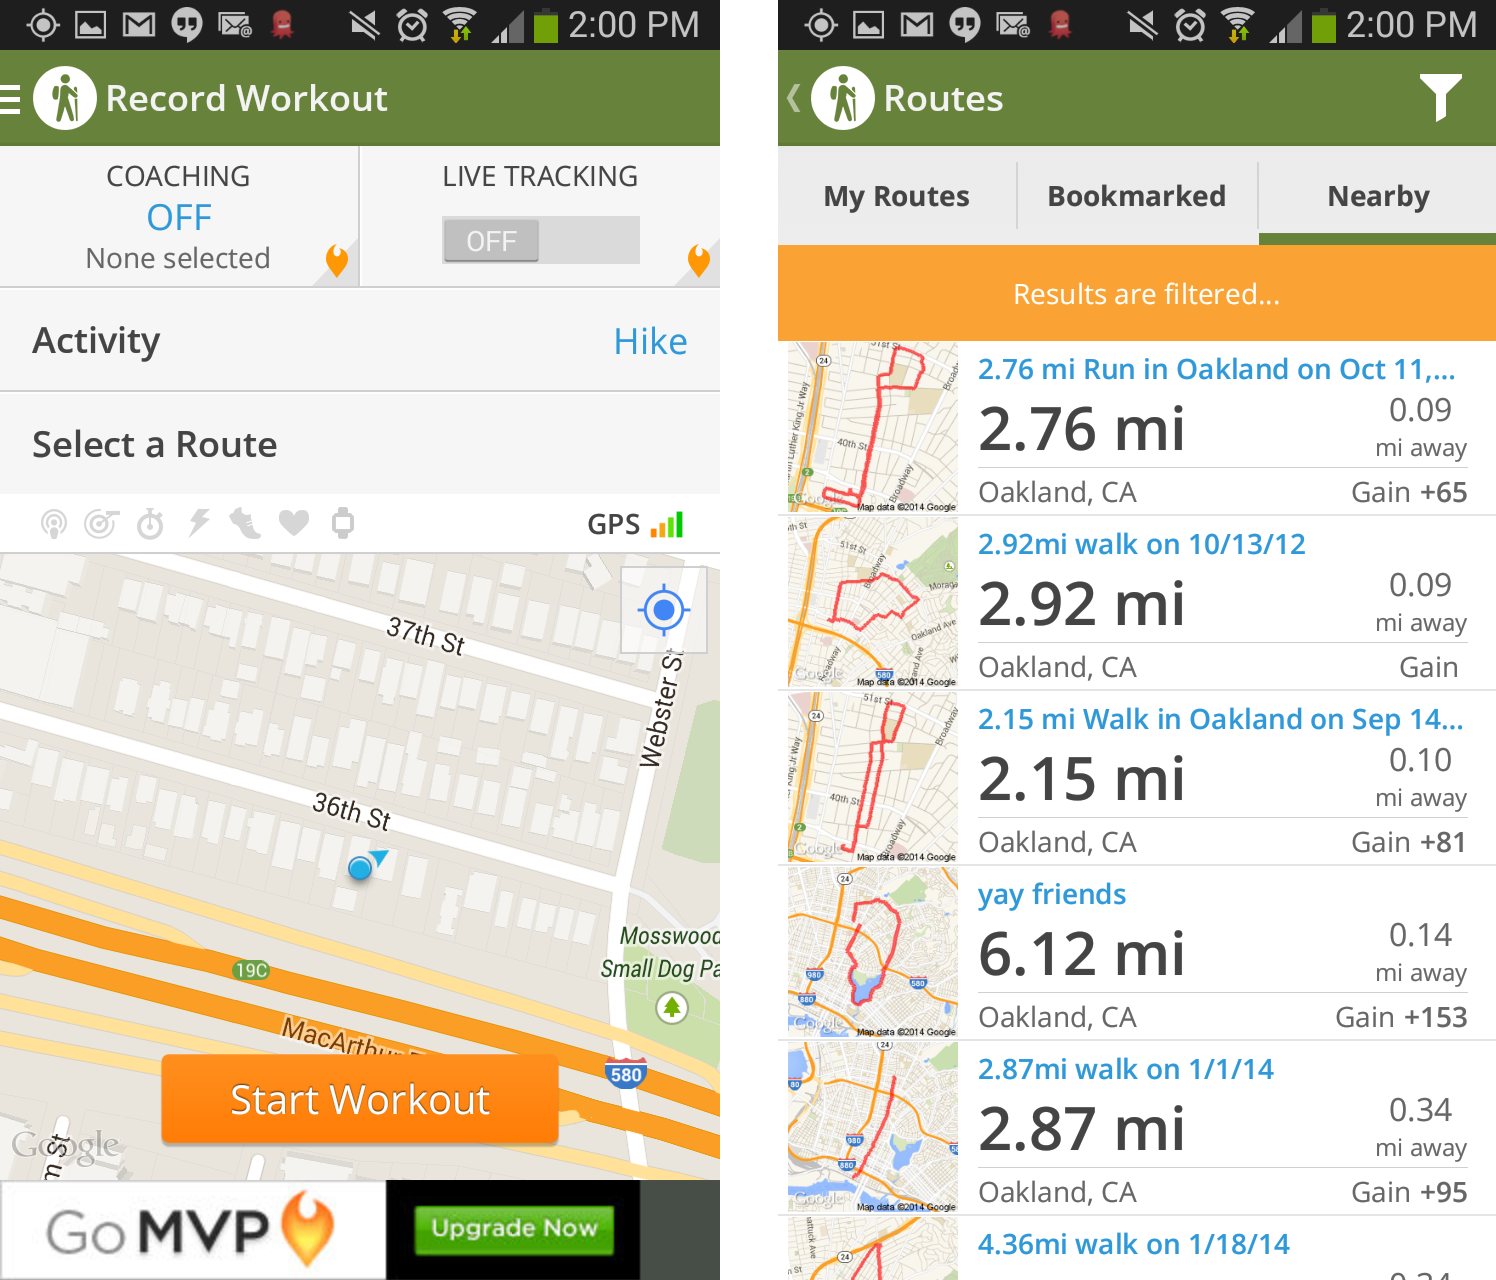 seven hiking apps for hitting the trails  macworld - mapmyhike find and record hiking routes